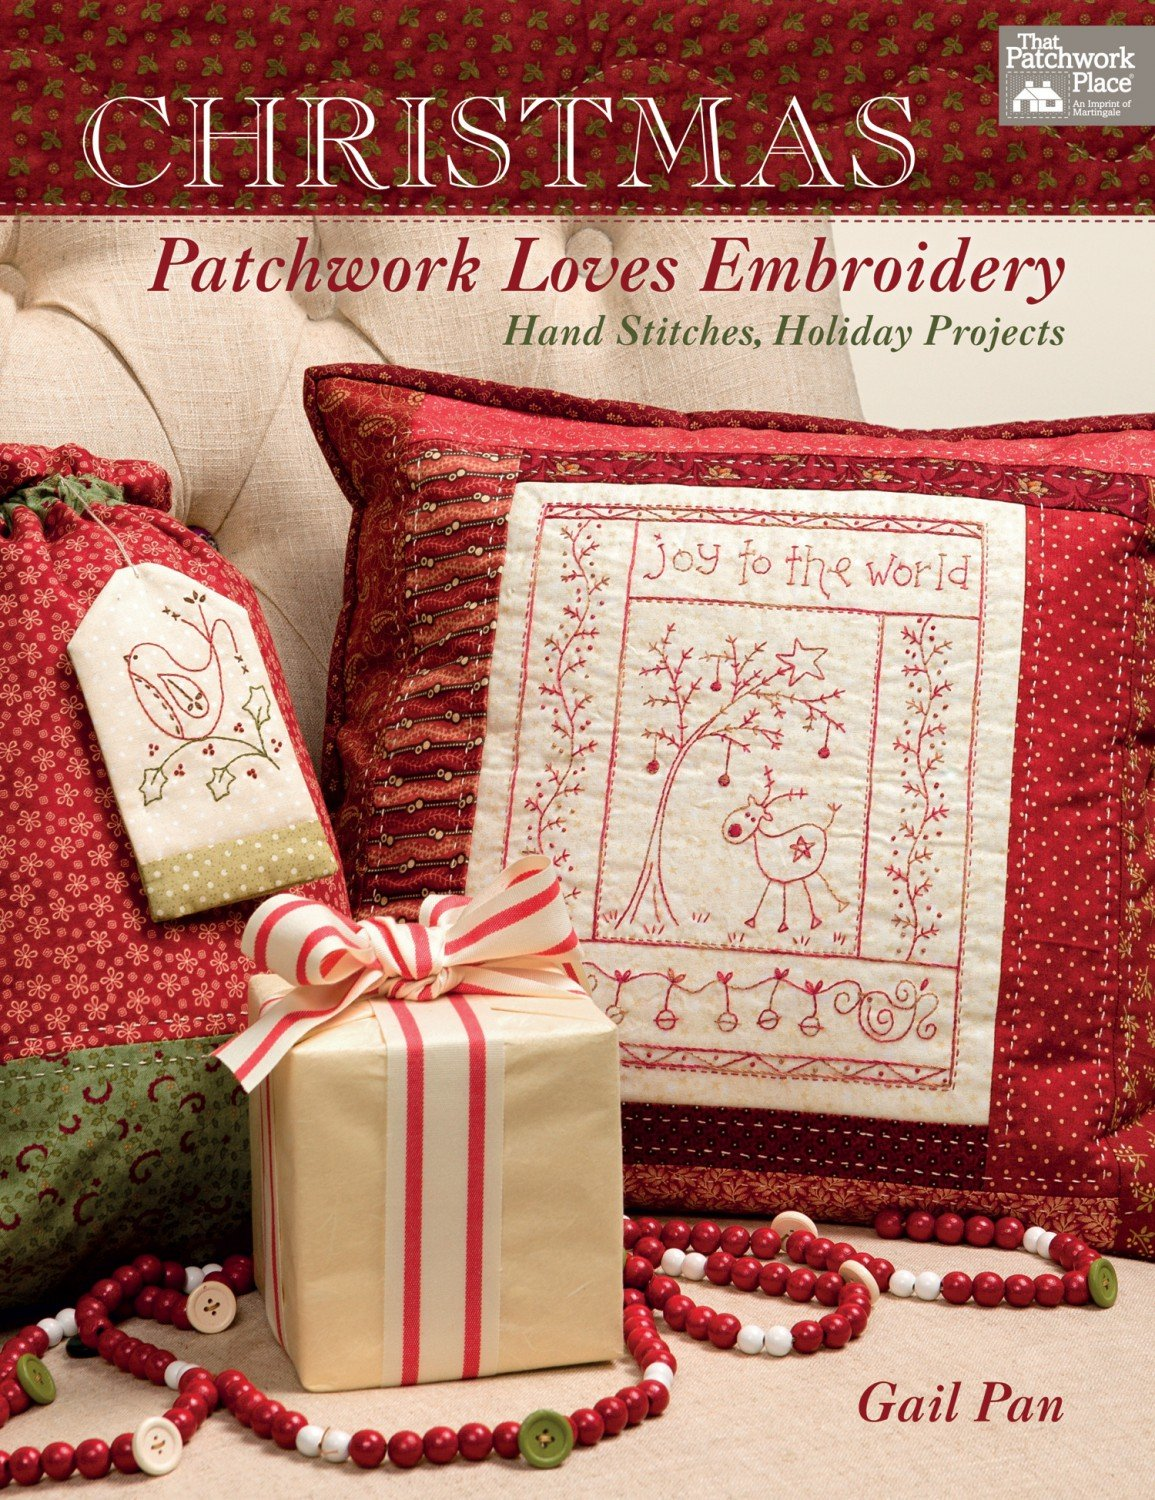 Christmas Patchwork Love Embroidery from The Patchwork Place by Gail Pans